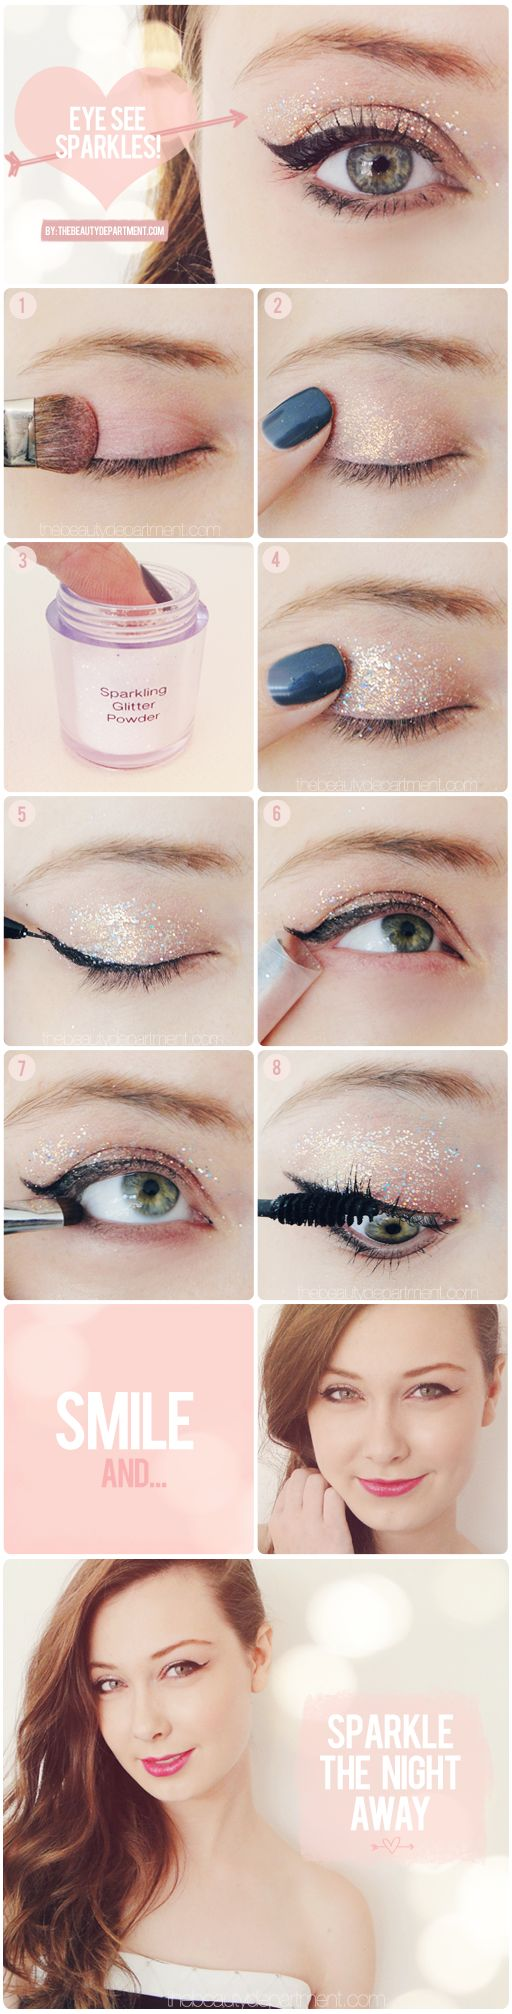 thebeautydepartment.com sparkle eye